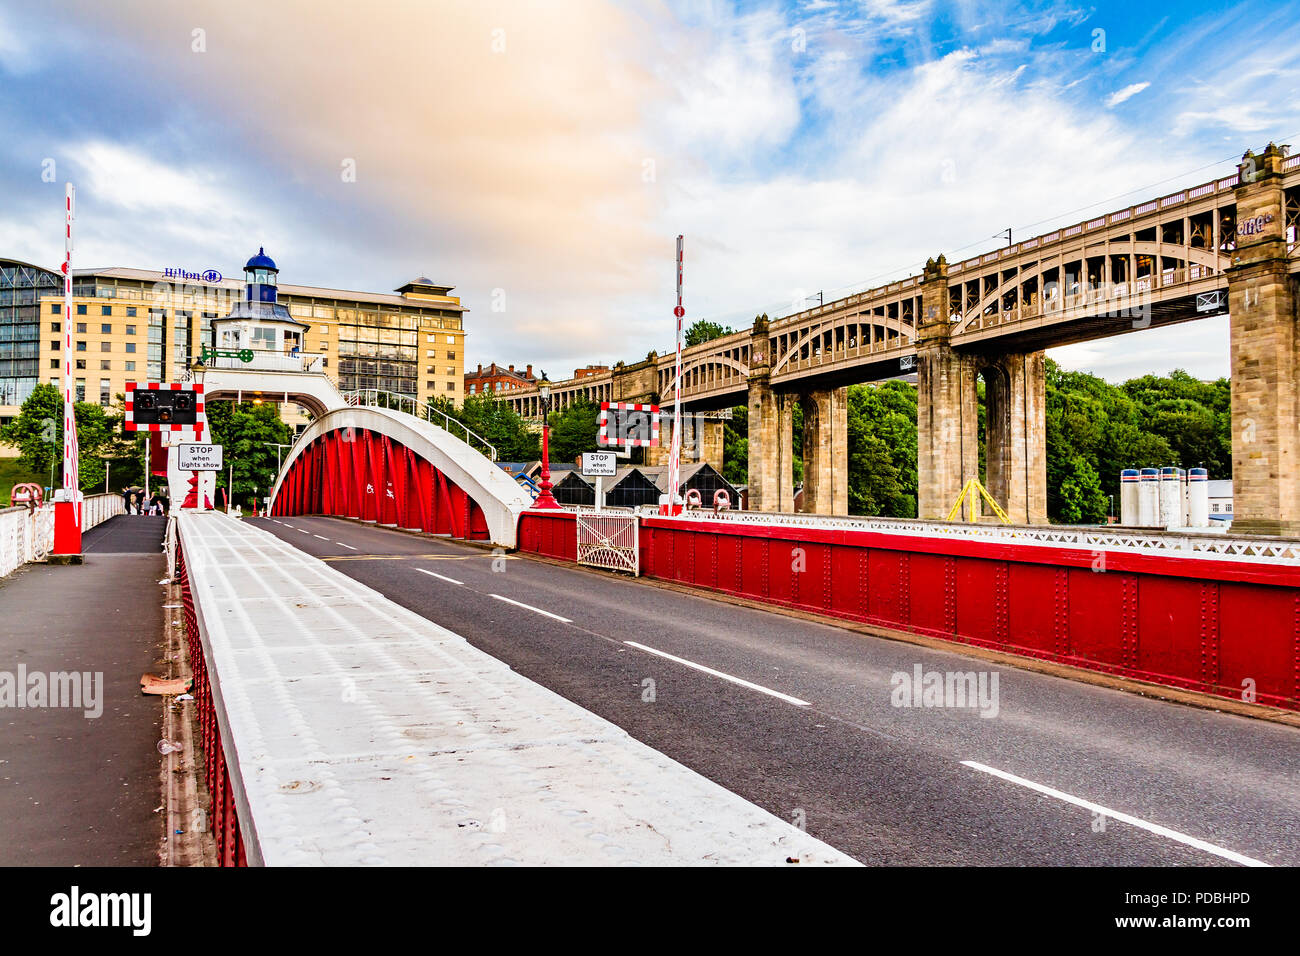 The hydraulic Swing Bridge built by William Armstrong in 1876, one of several bridges connecting Newcastle and Gateshead over the River Tyne, UK. - Stock Image